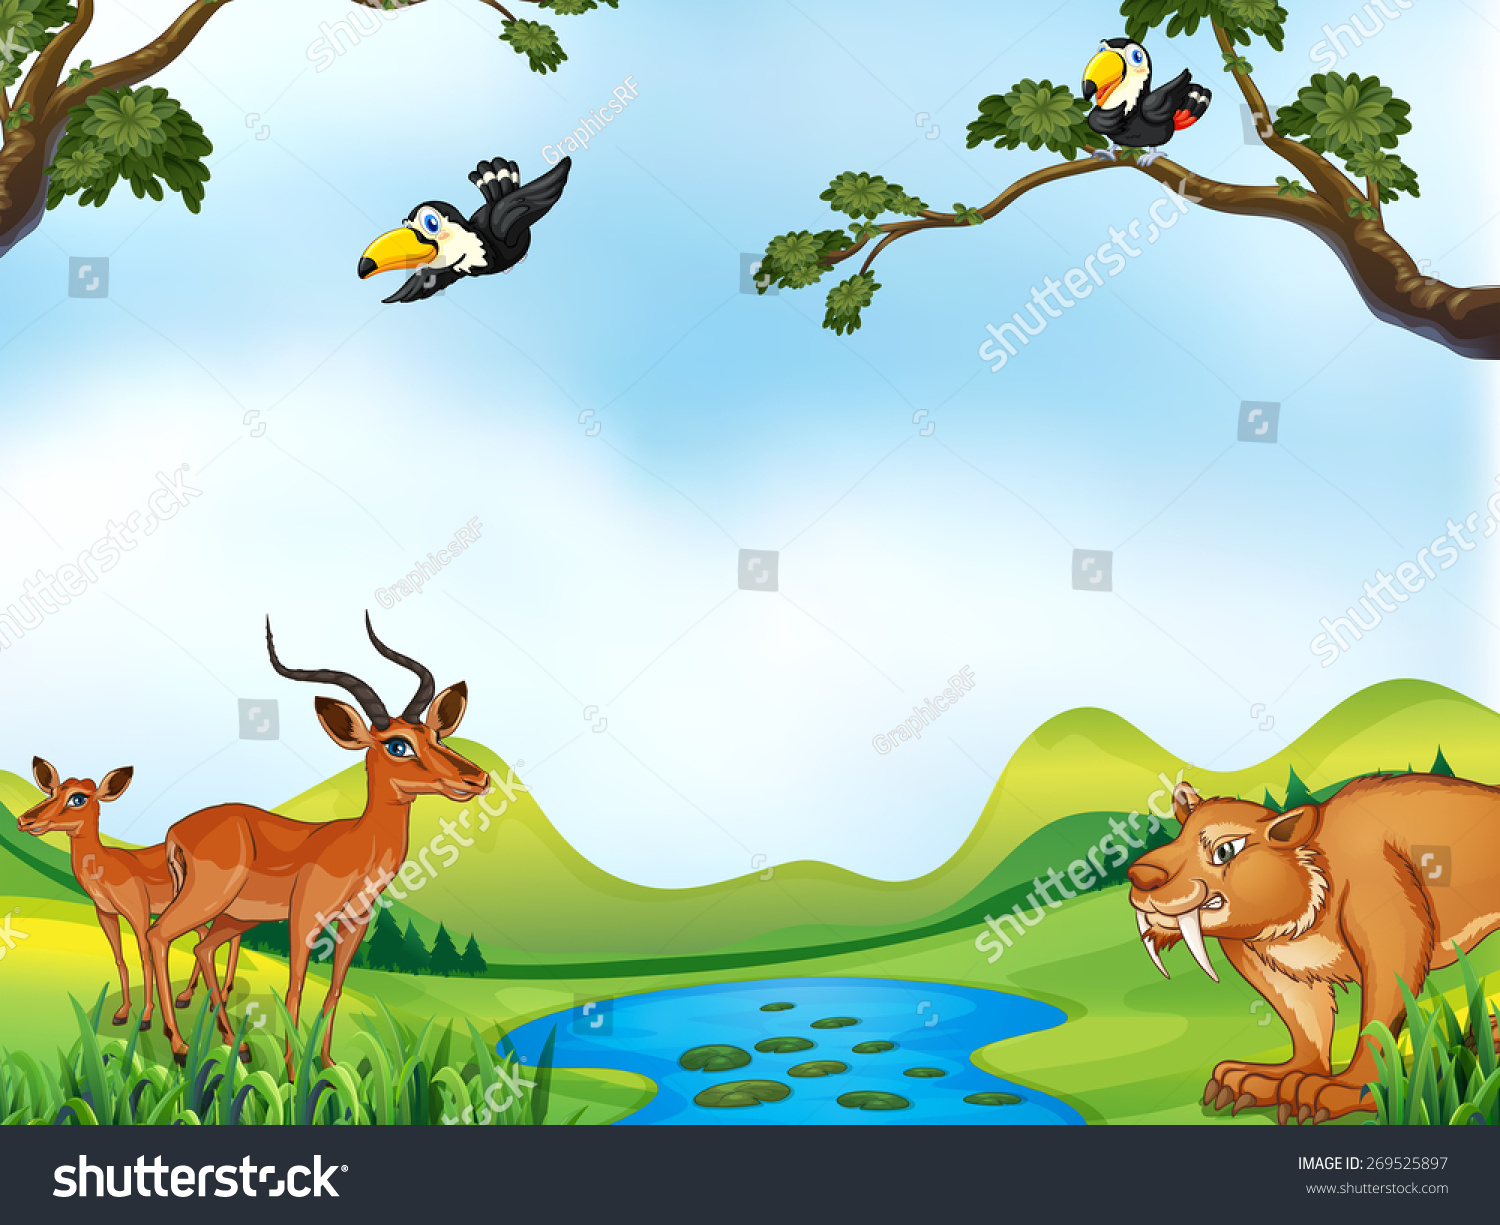 Many animals around pond stock vector 269525897 shutterstock for Pond animals